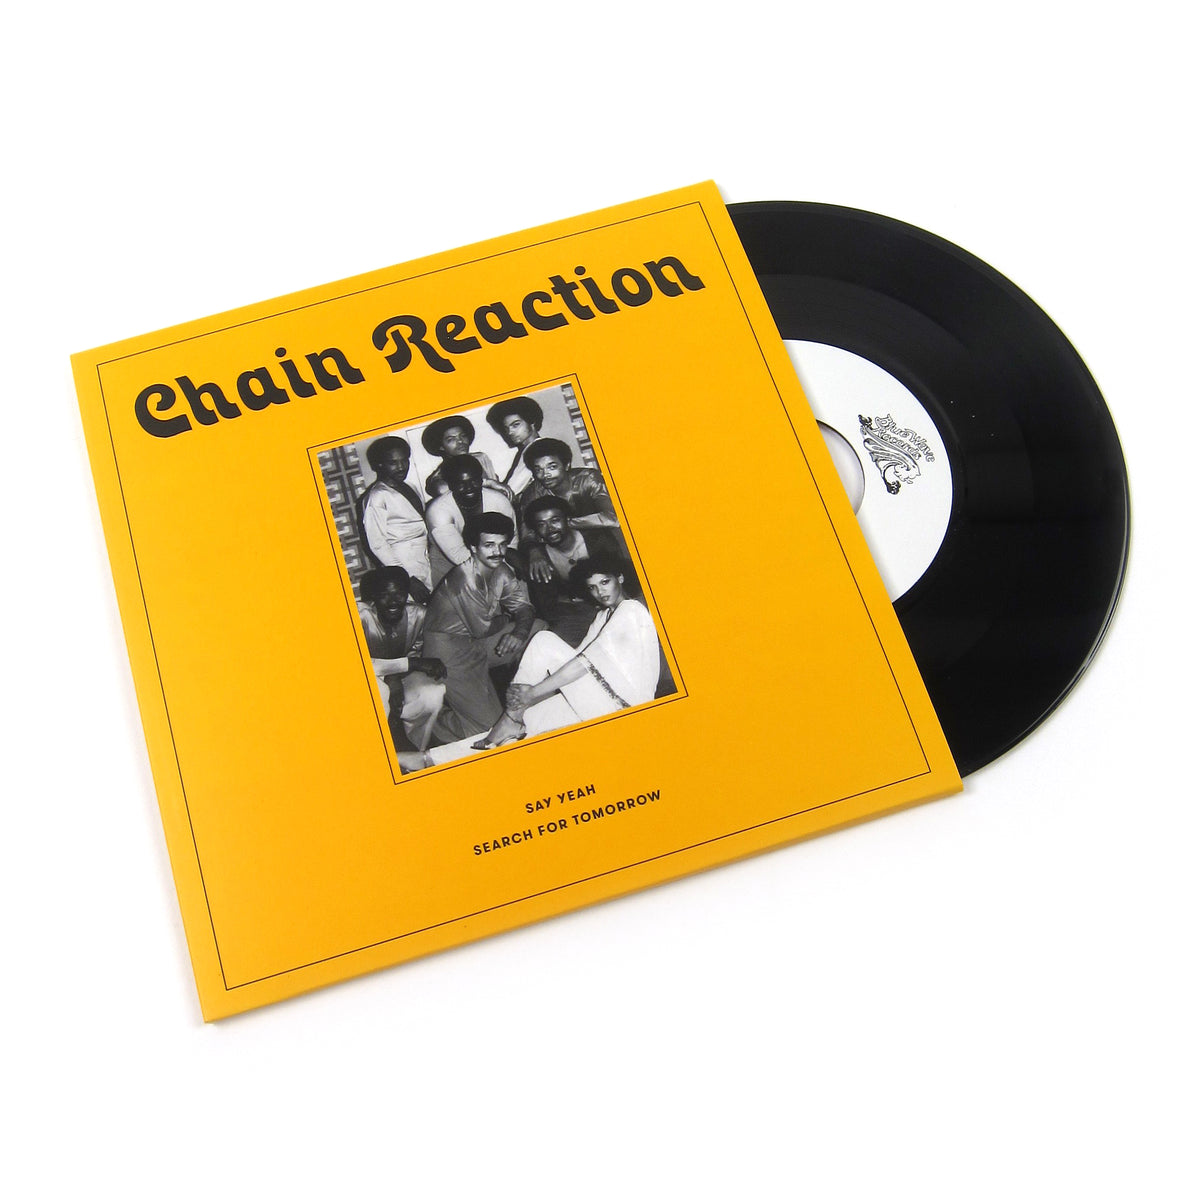 Chain Reaction: Say Yeah / Search For Tomorrow Vinyl 7""